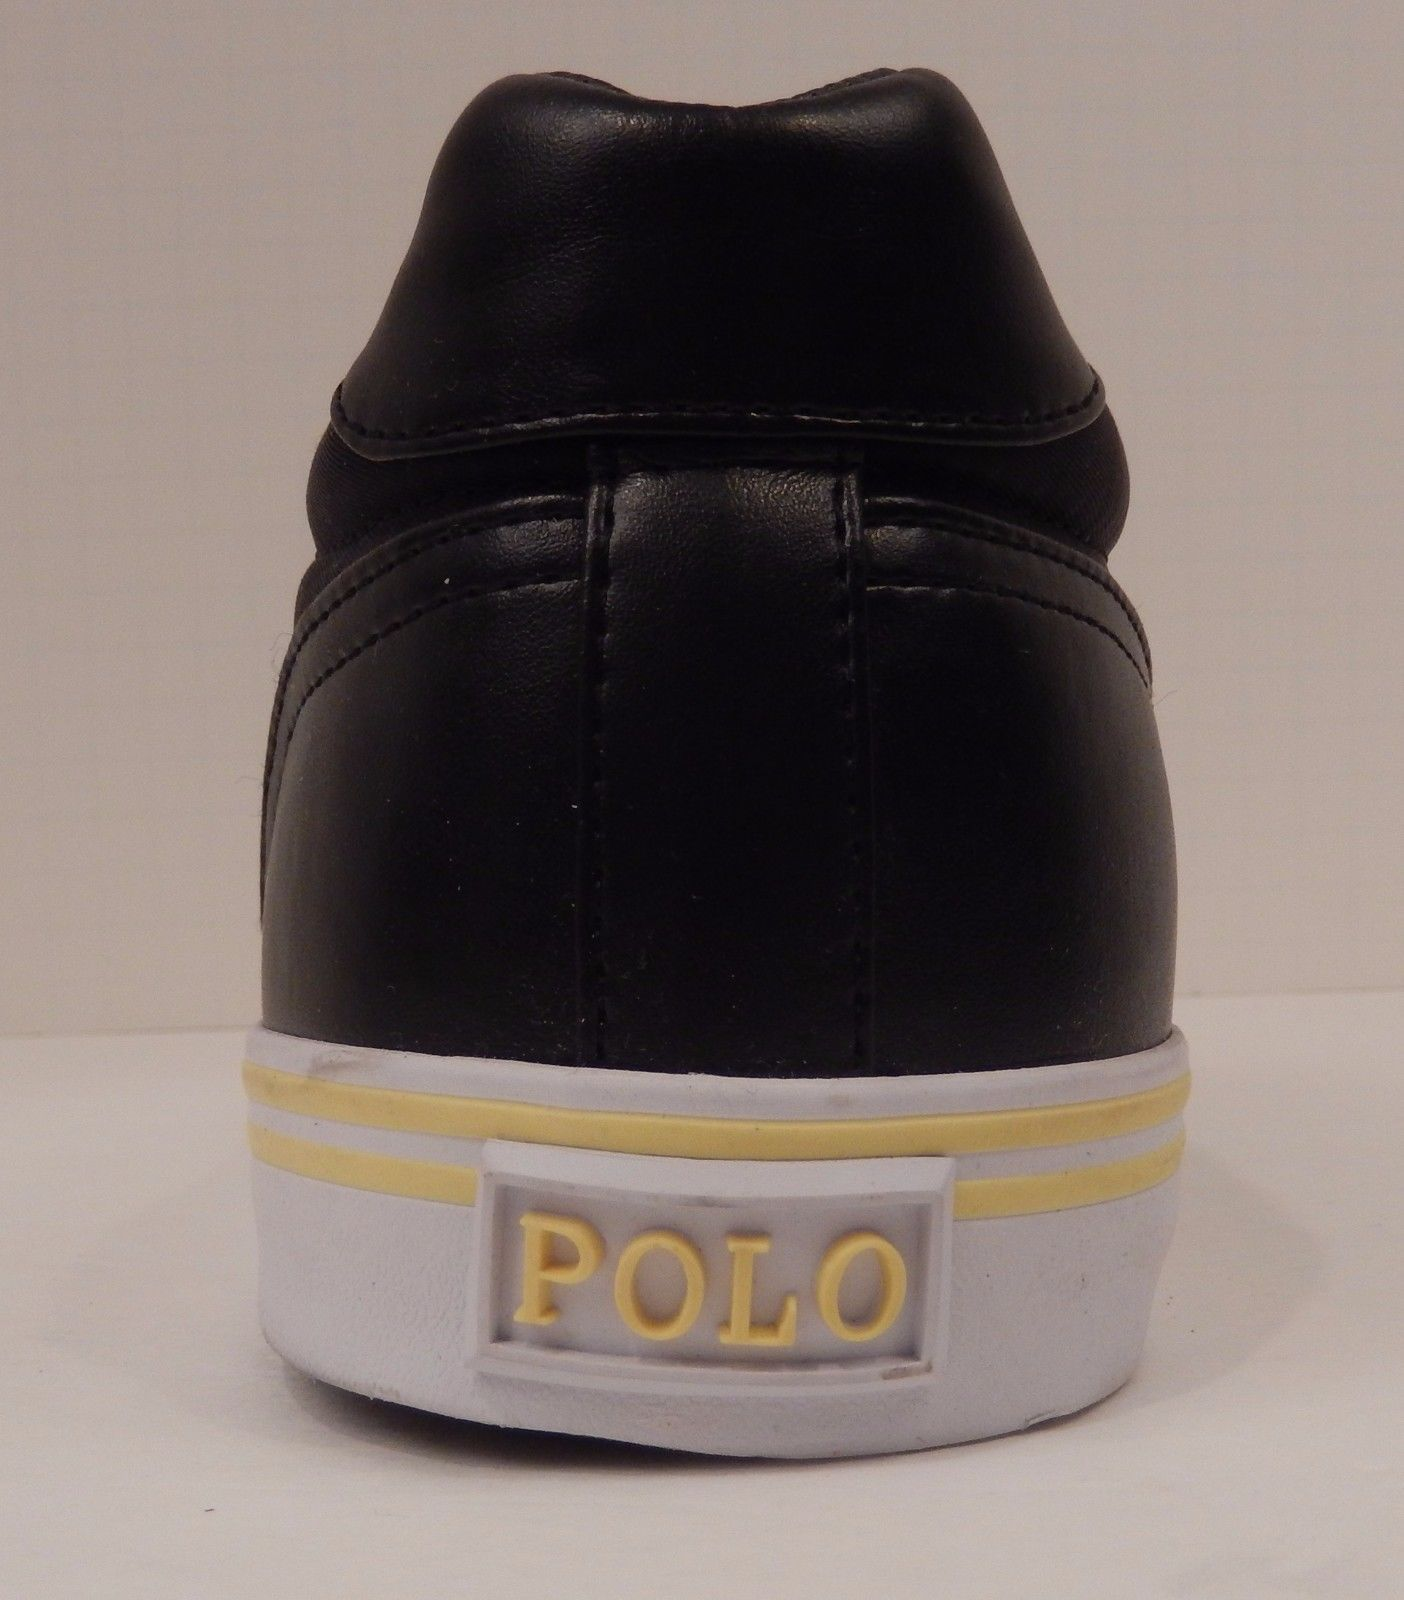 POLO RALPH LAUREN MENS SIZE 13 TO 16 BLACK NAVY BLUE FASHION SNEAKER HANFORD